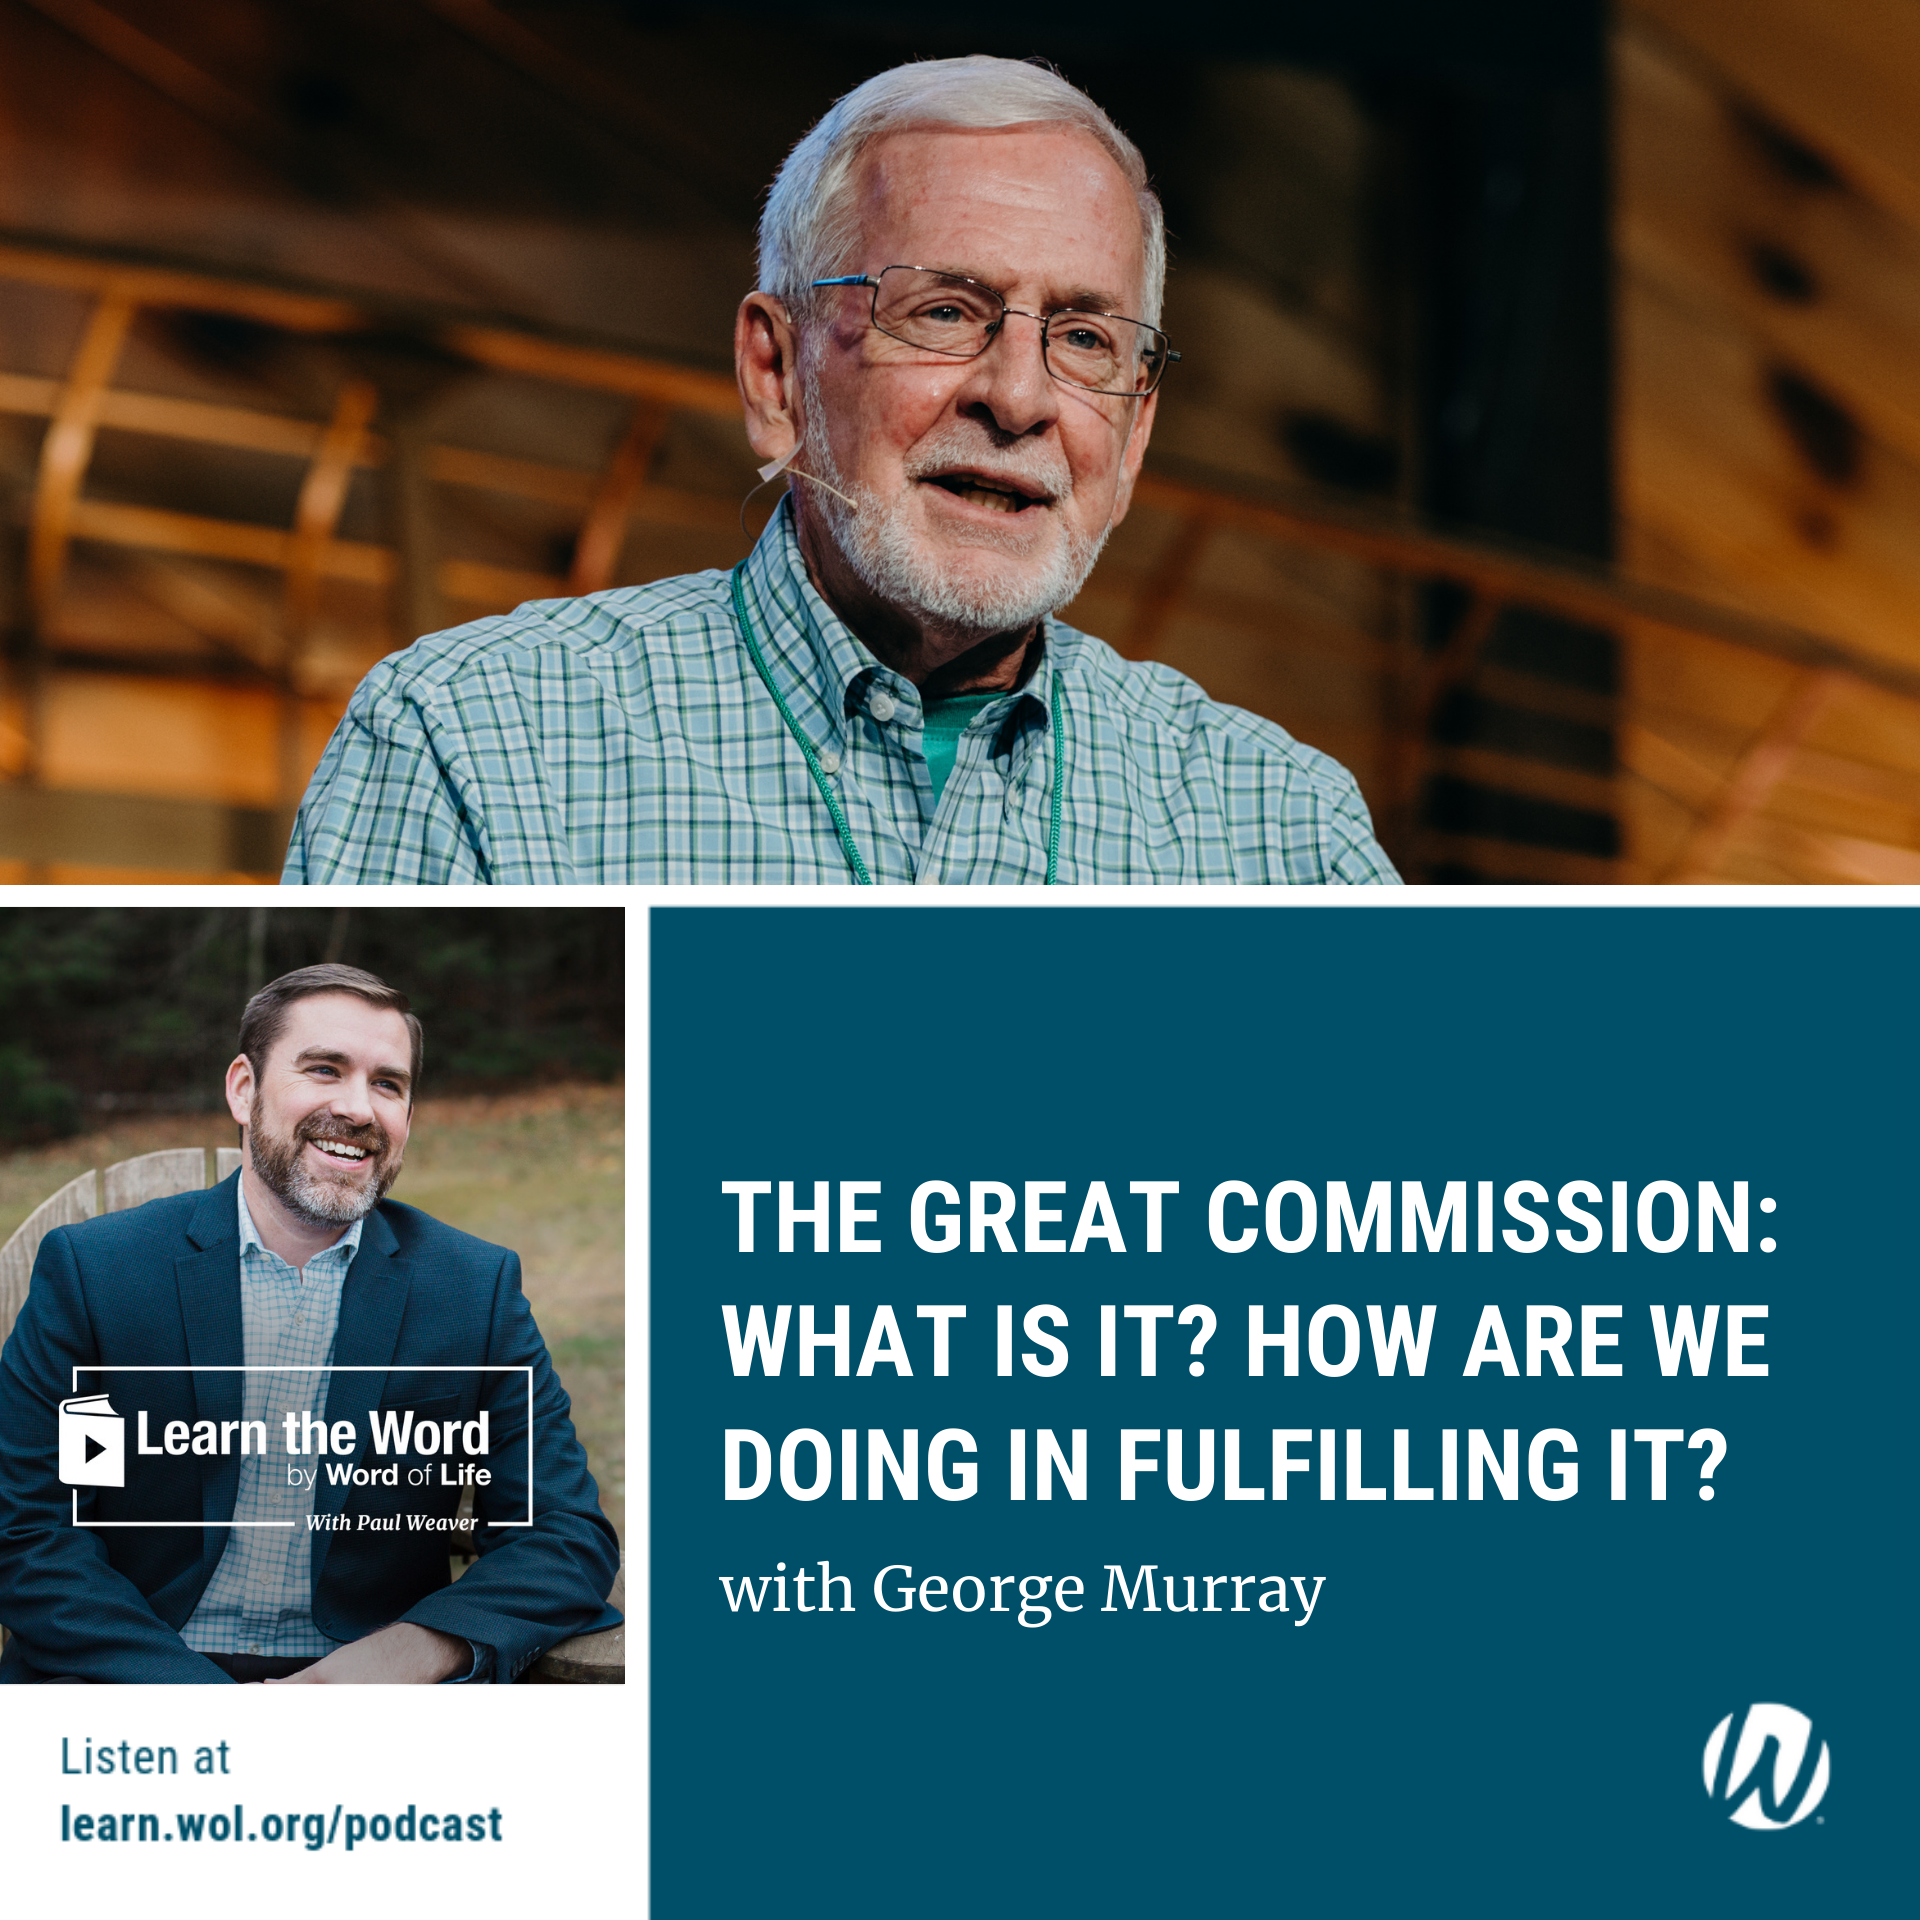 LTW180 - The Great Commission: What Is It? How Are We Doing in Fulfilling It?